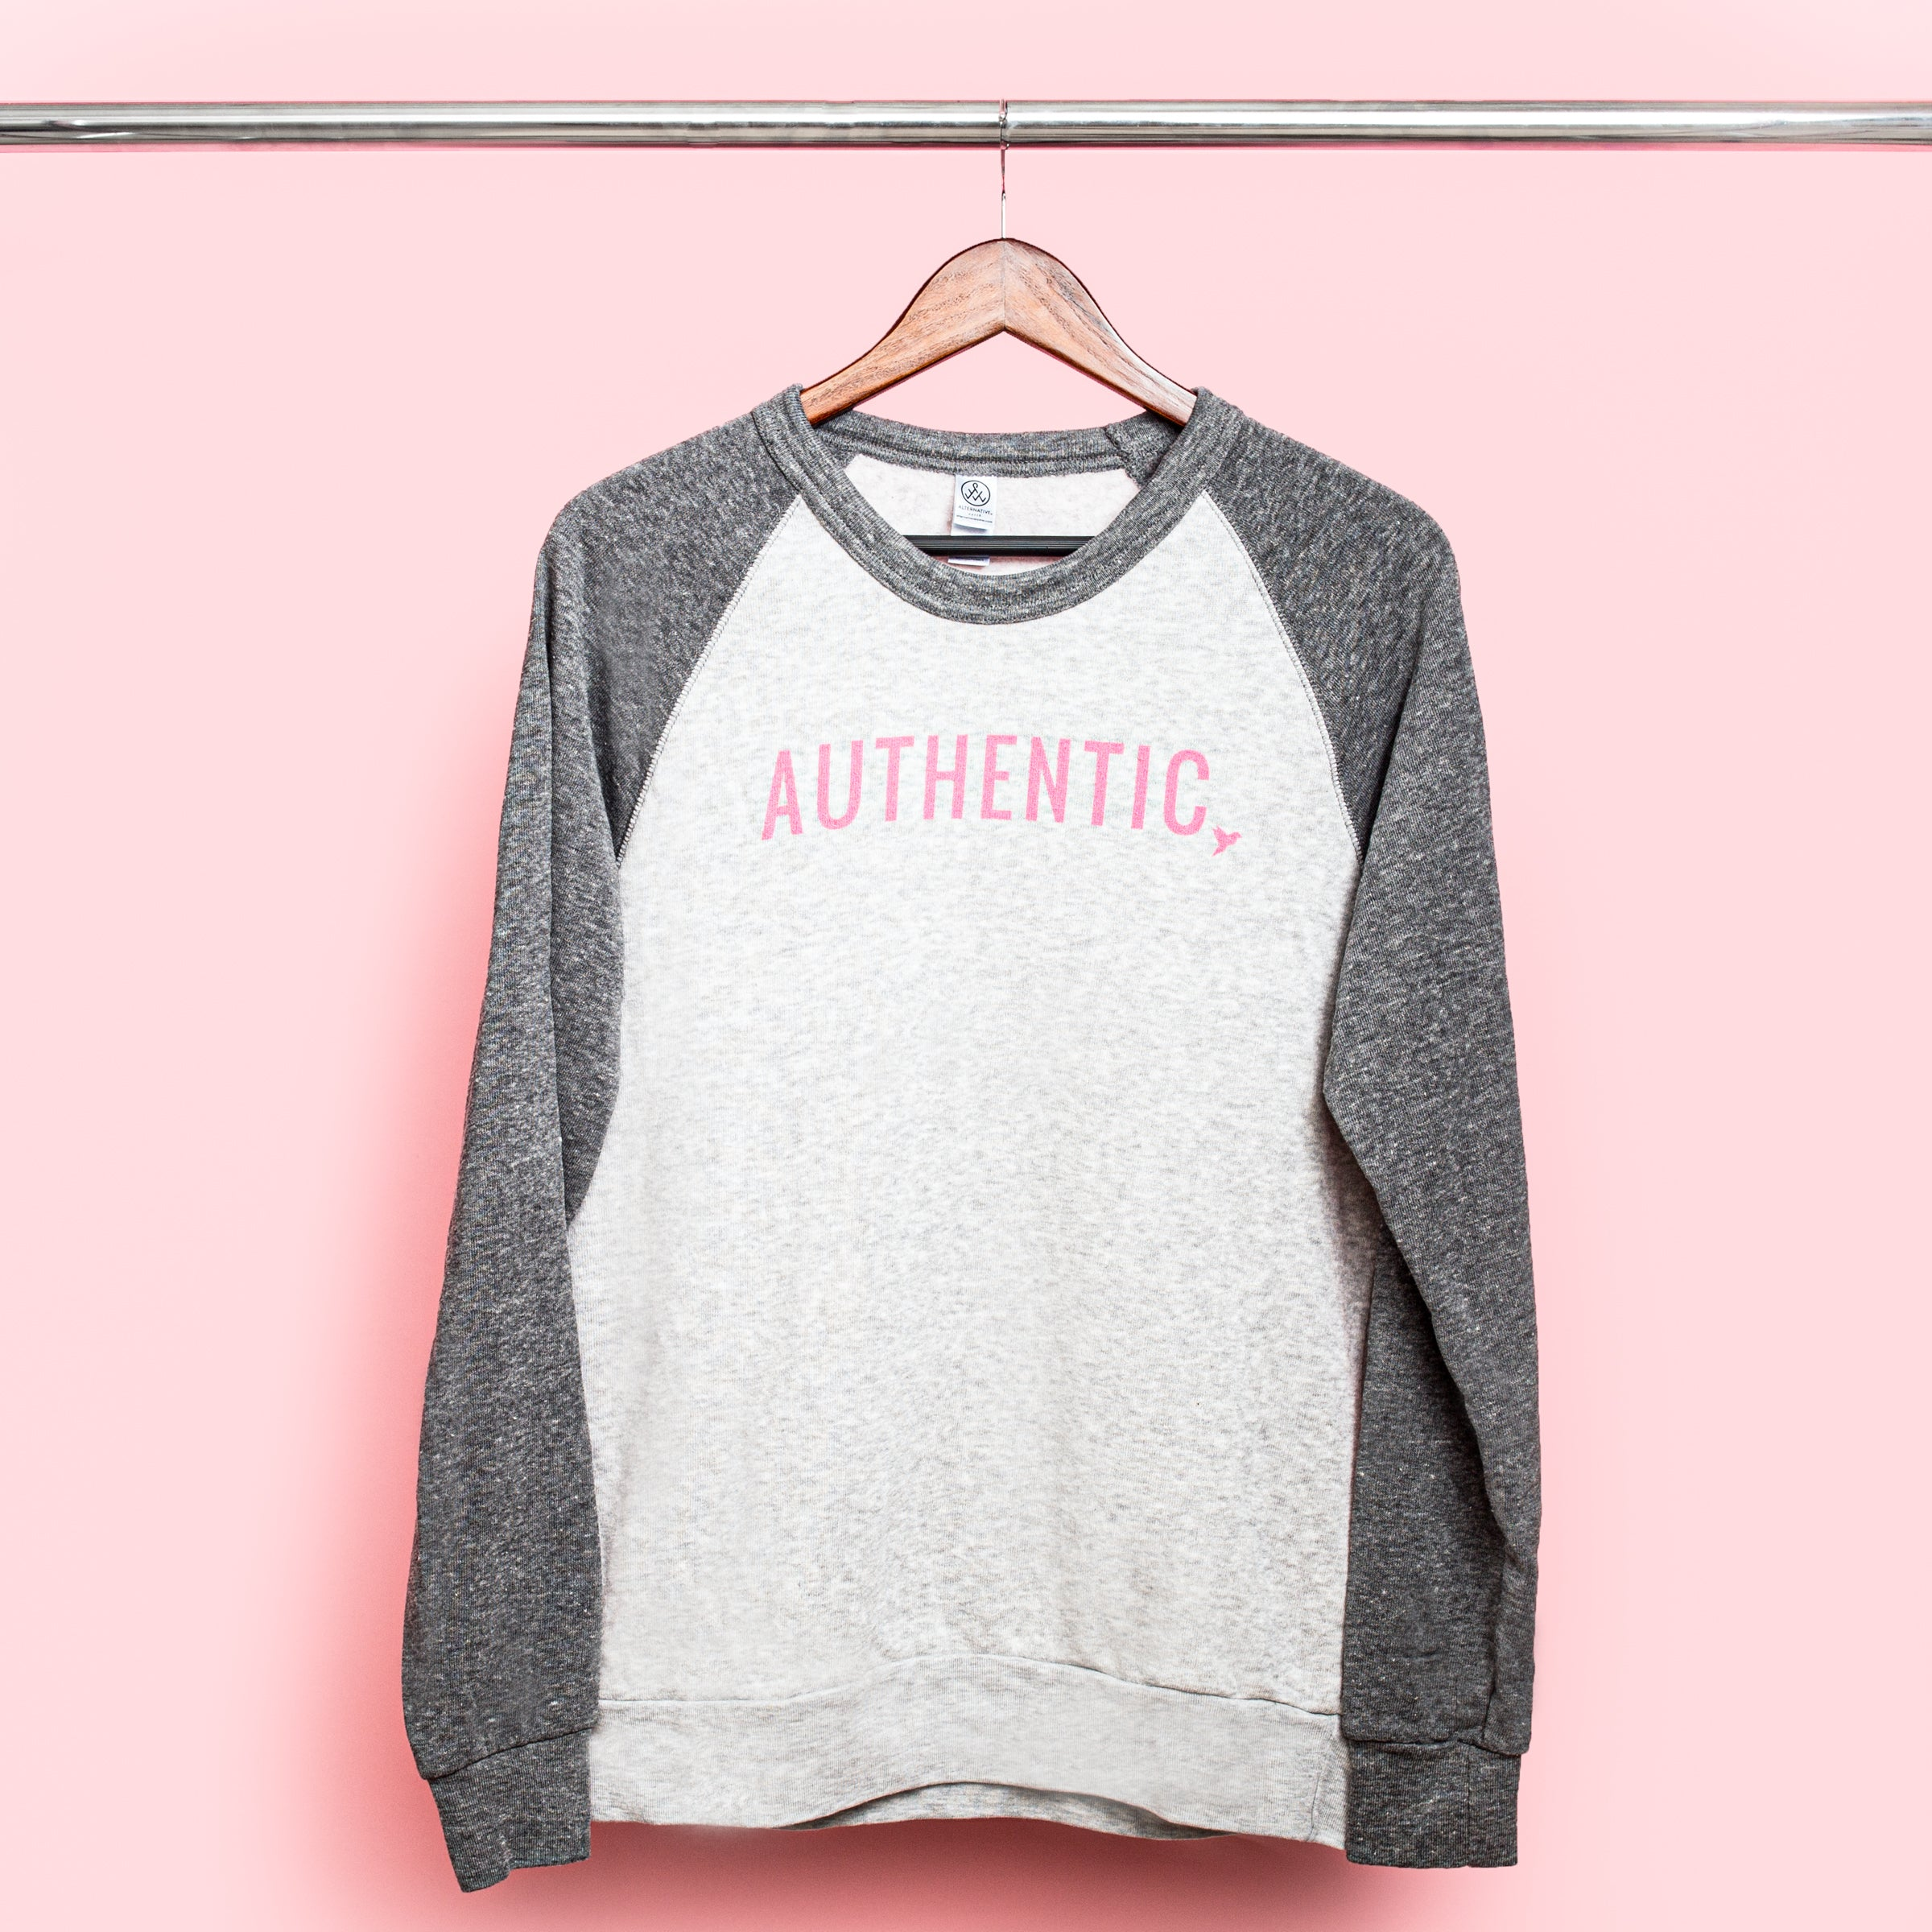 Authentic Baseball Style Sweatshirt